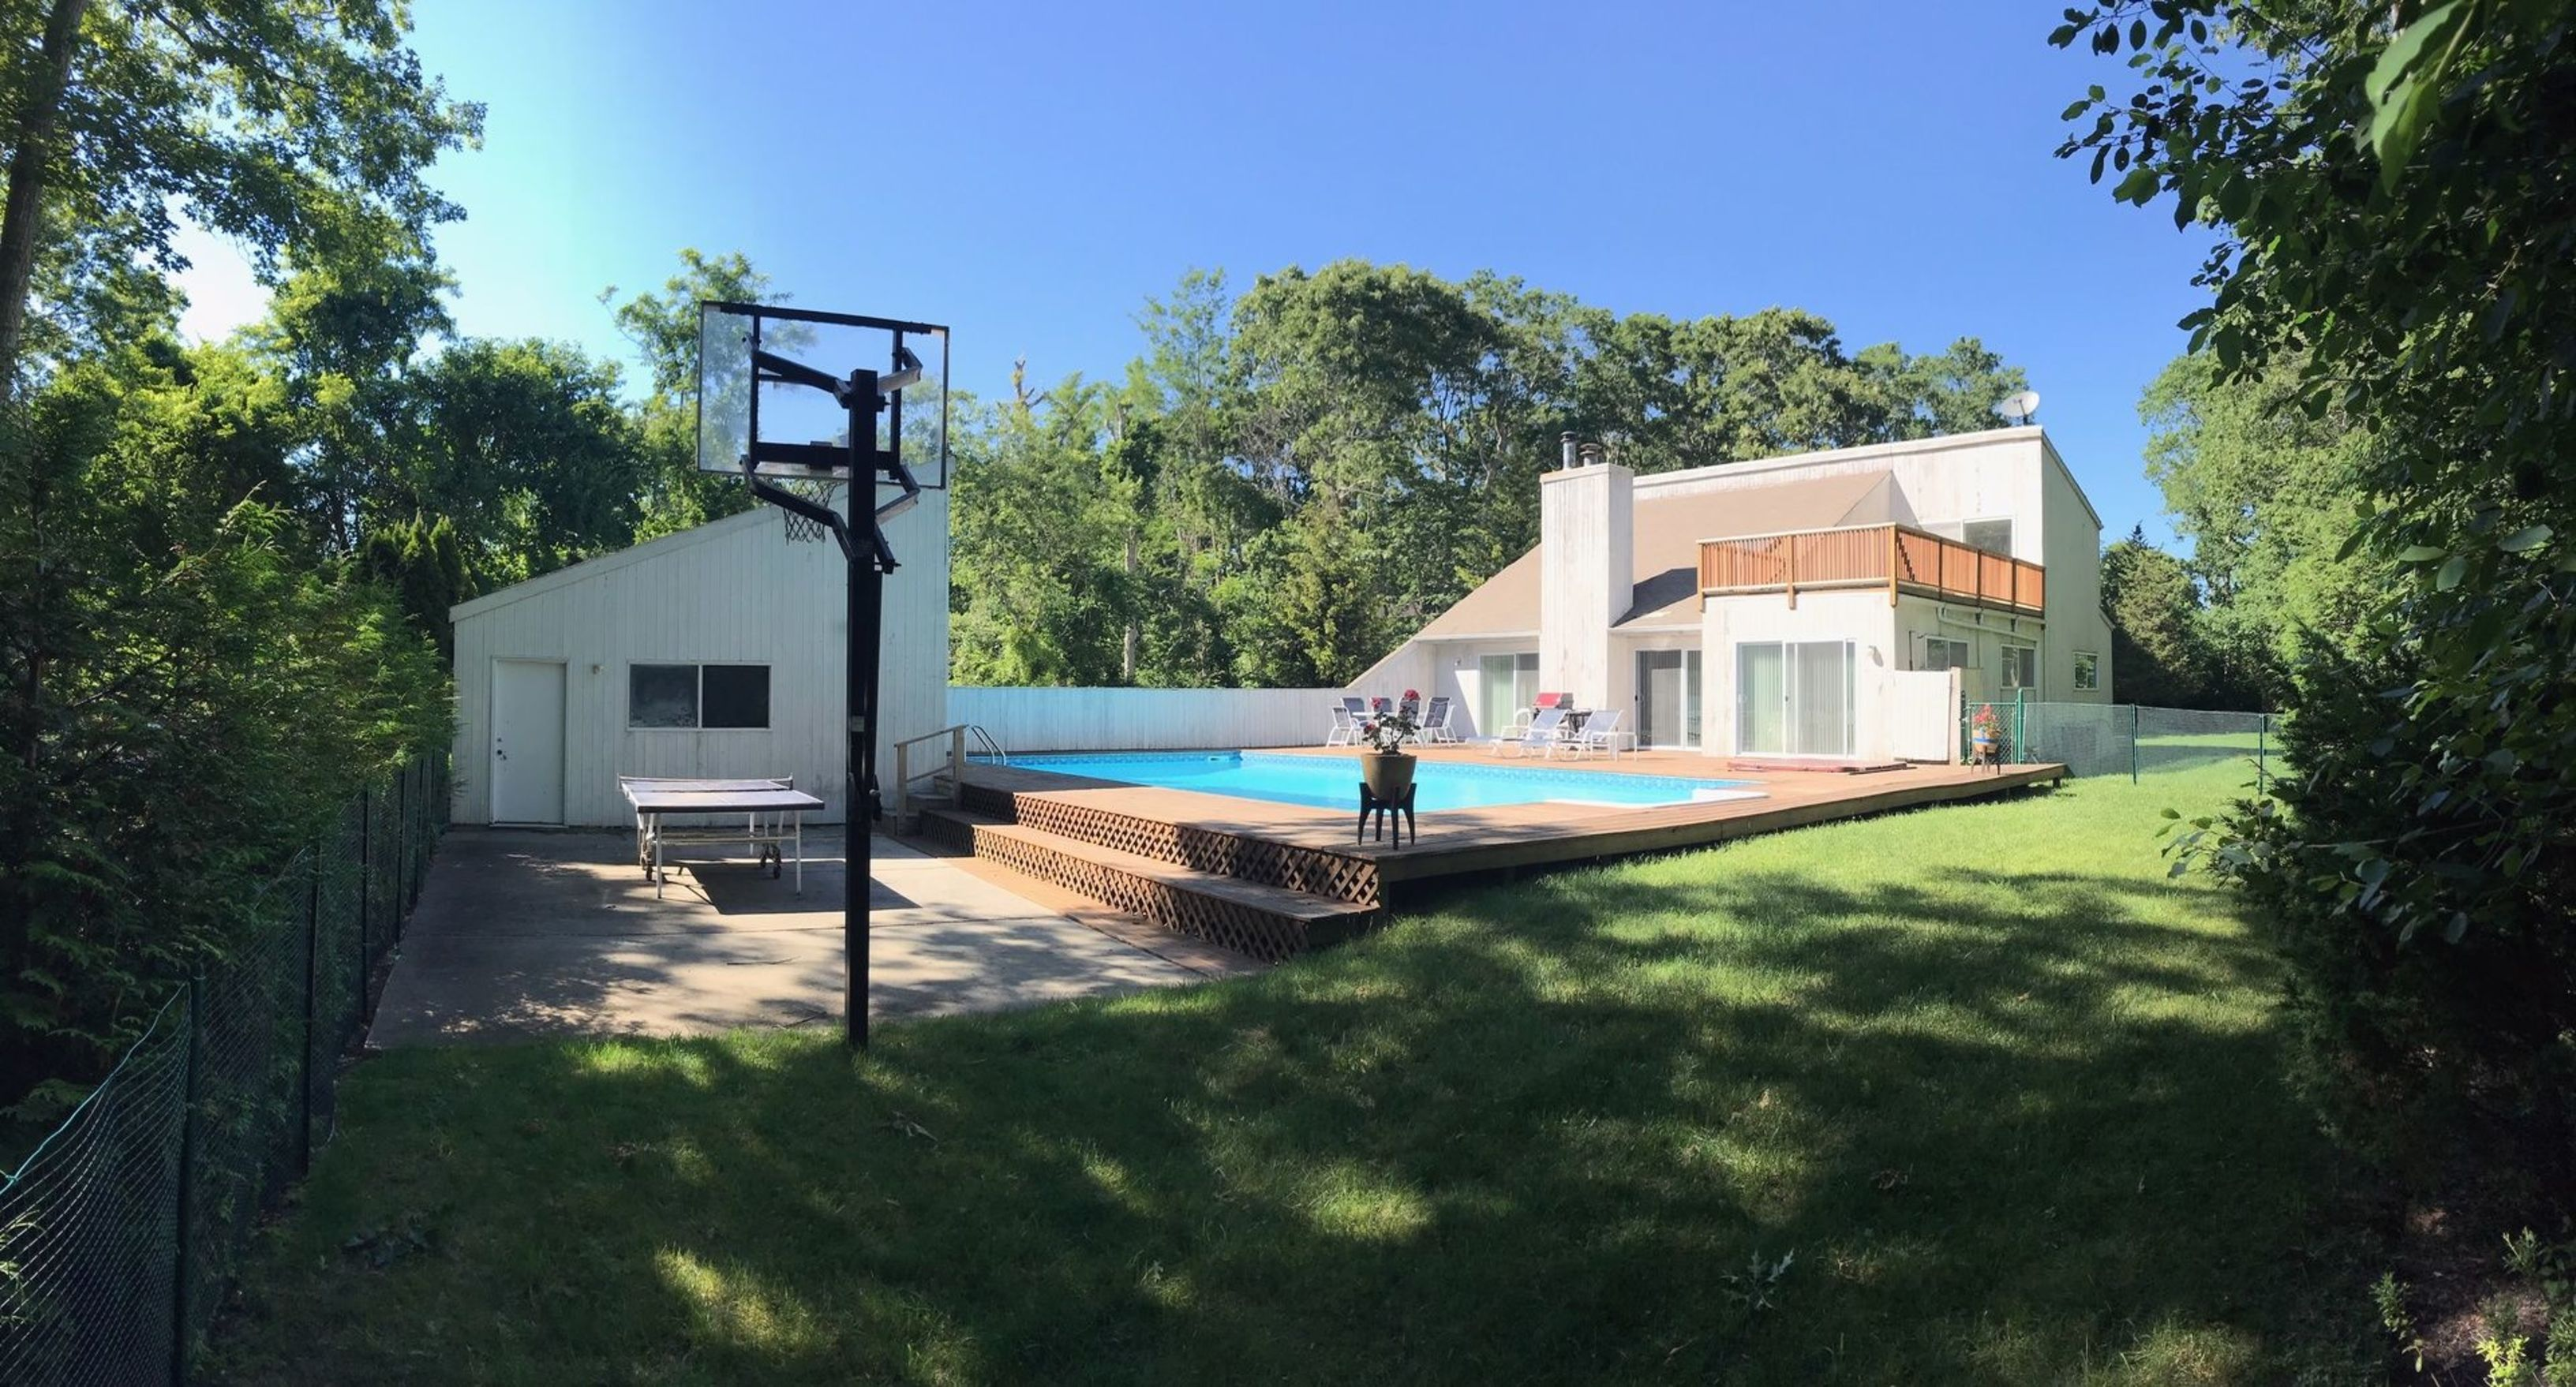 47 Old Meetinghouse Rd - Quogue North, New York